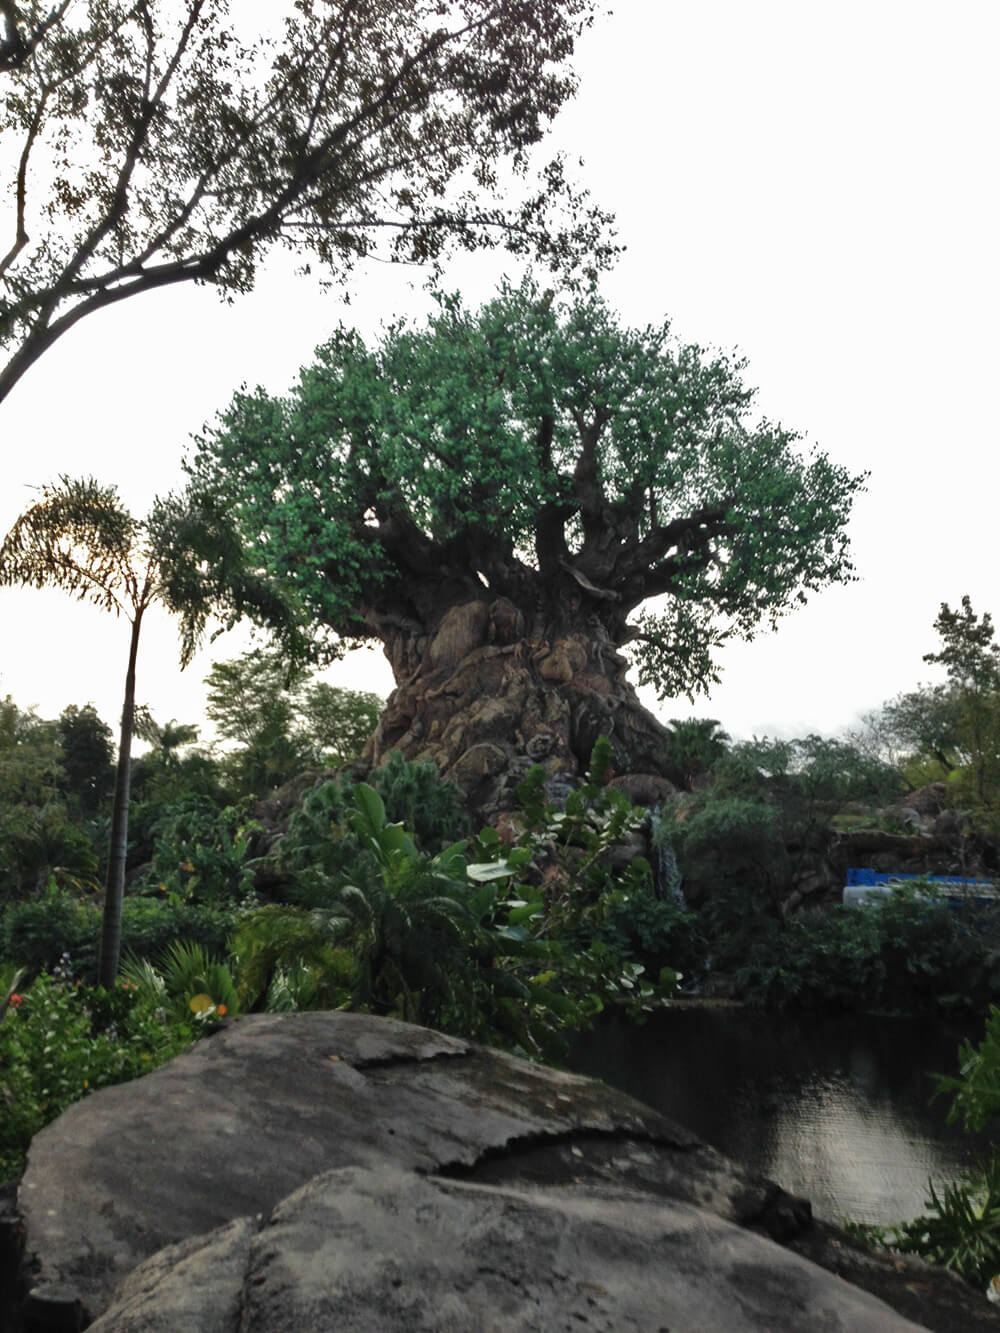 What to Expect at the Disney World Marathon - Tree of Life